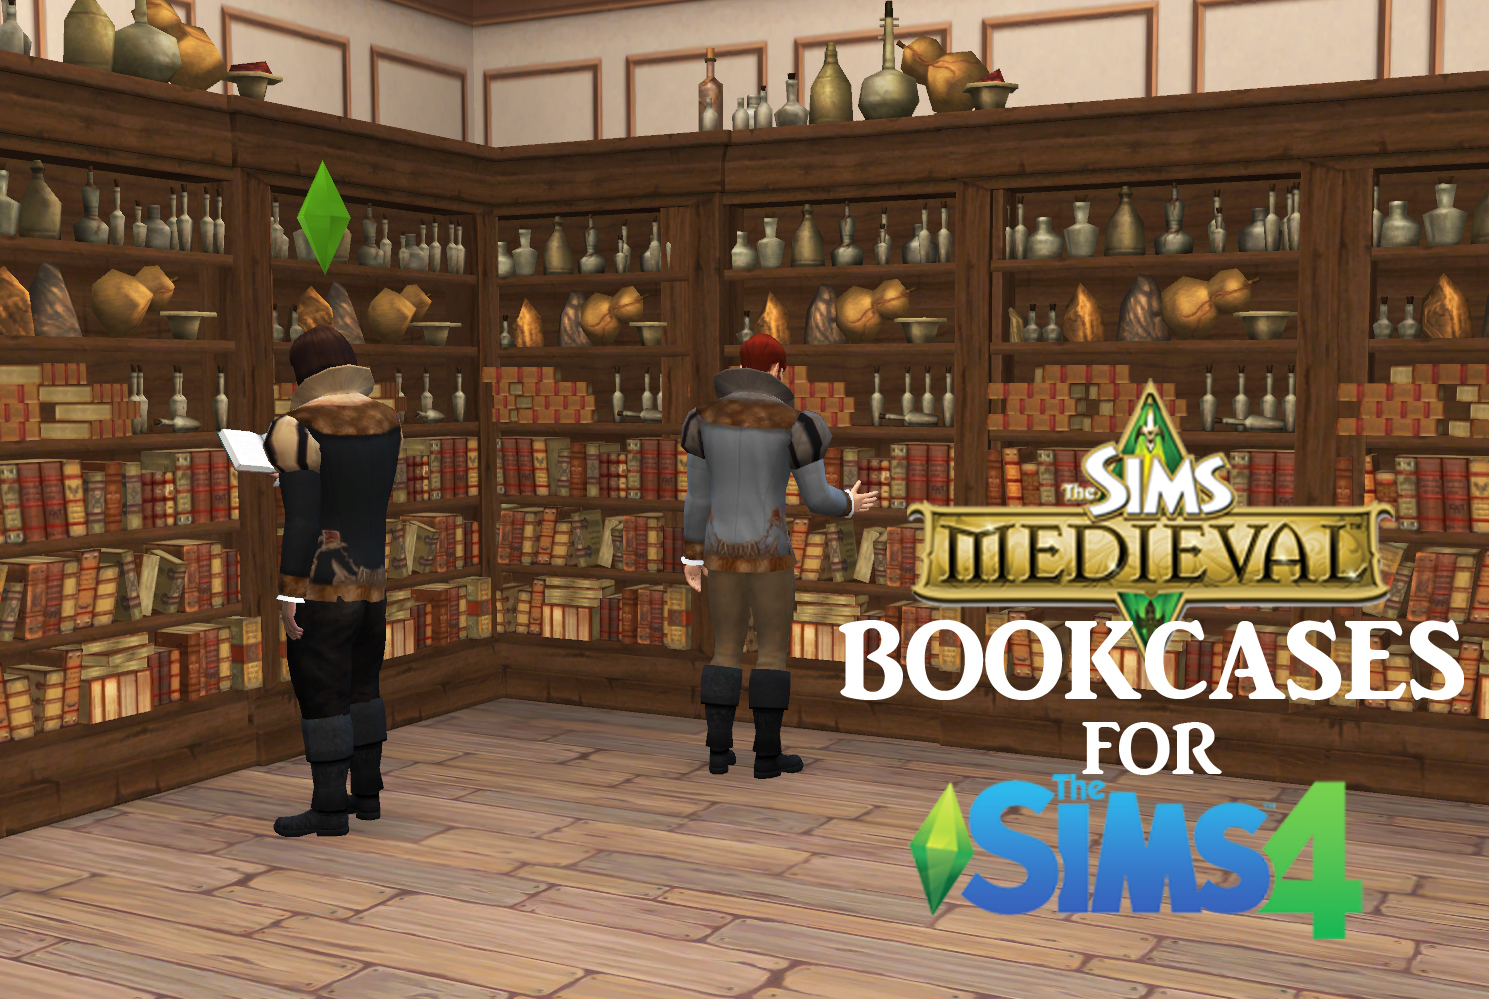 Wonderful image of  : The Sims Medieval Bookcases for Sims 4 History Lover's Sims Blog with #2866A3 color and 1489x999 pixels